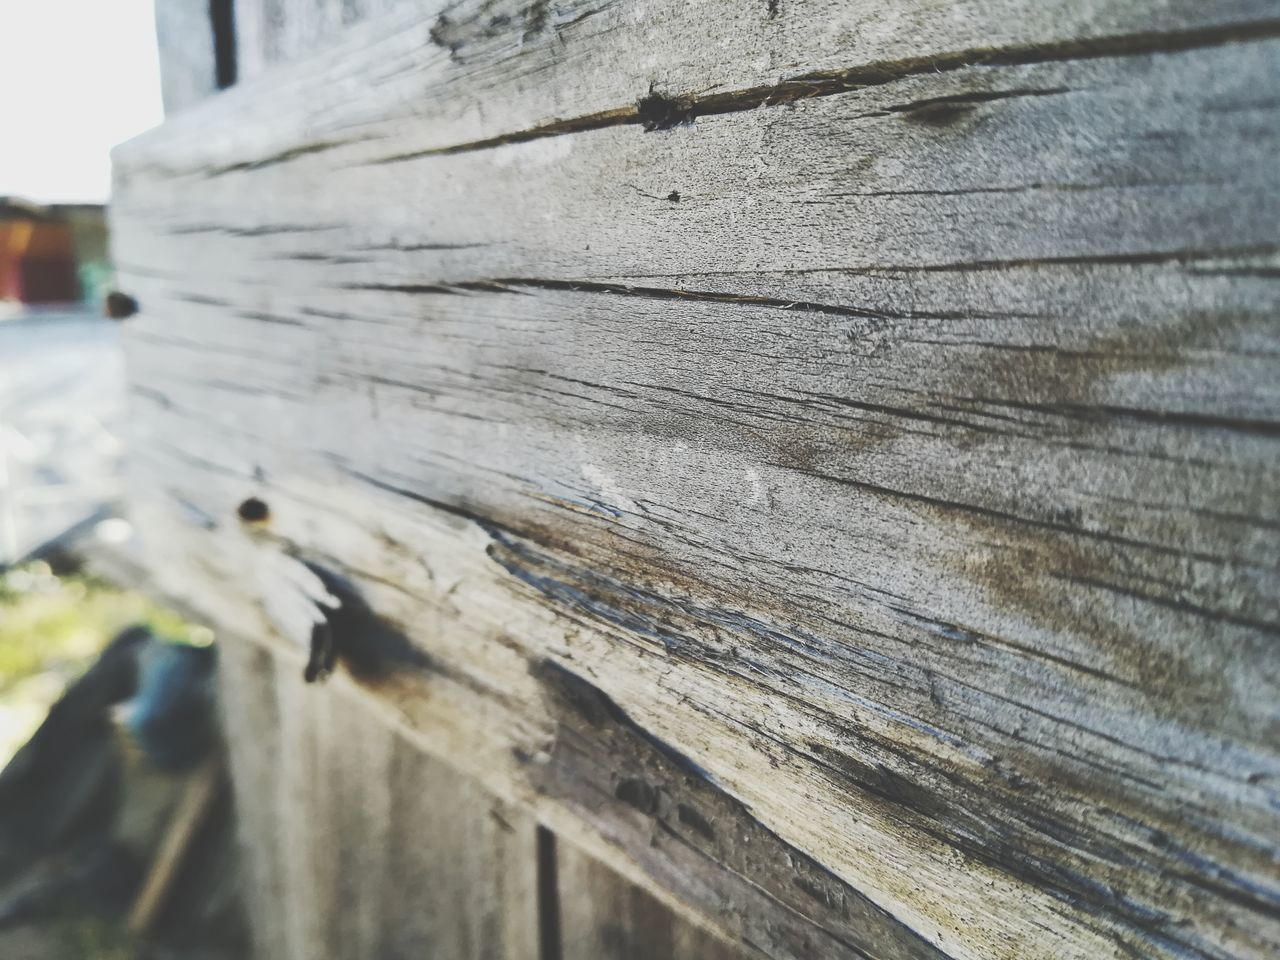 wood - material, close-up, textured, outdoors, day, pattern, no people, built structure, building exterior, architecture, nature